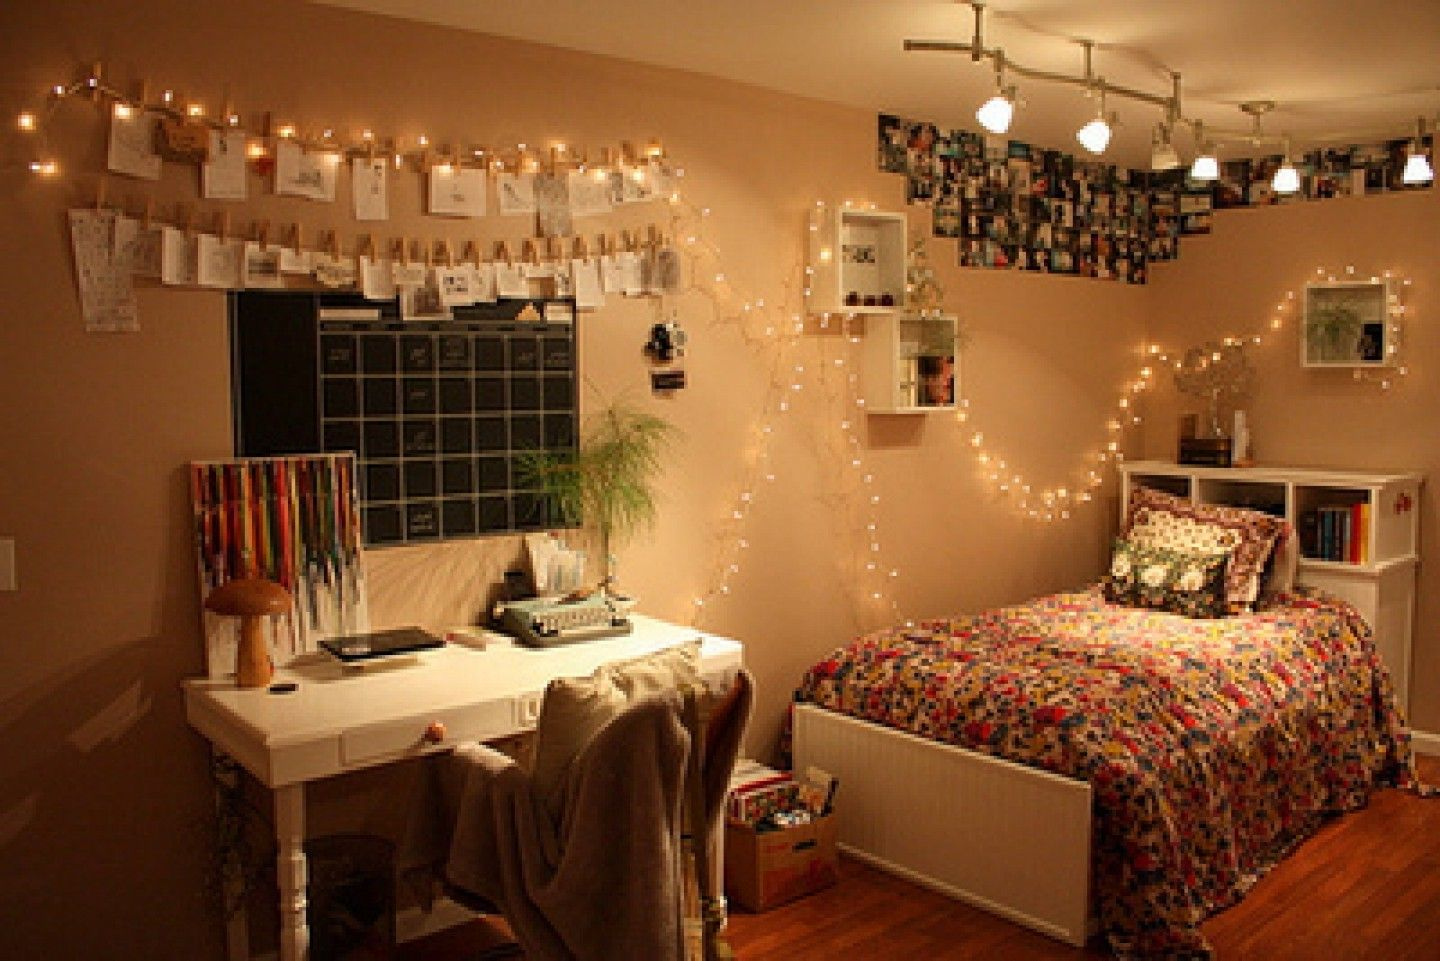 Bedroom Desk Tumblr Bedroom Ideas For Teenage Girls Tumblr Google Search